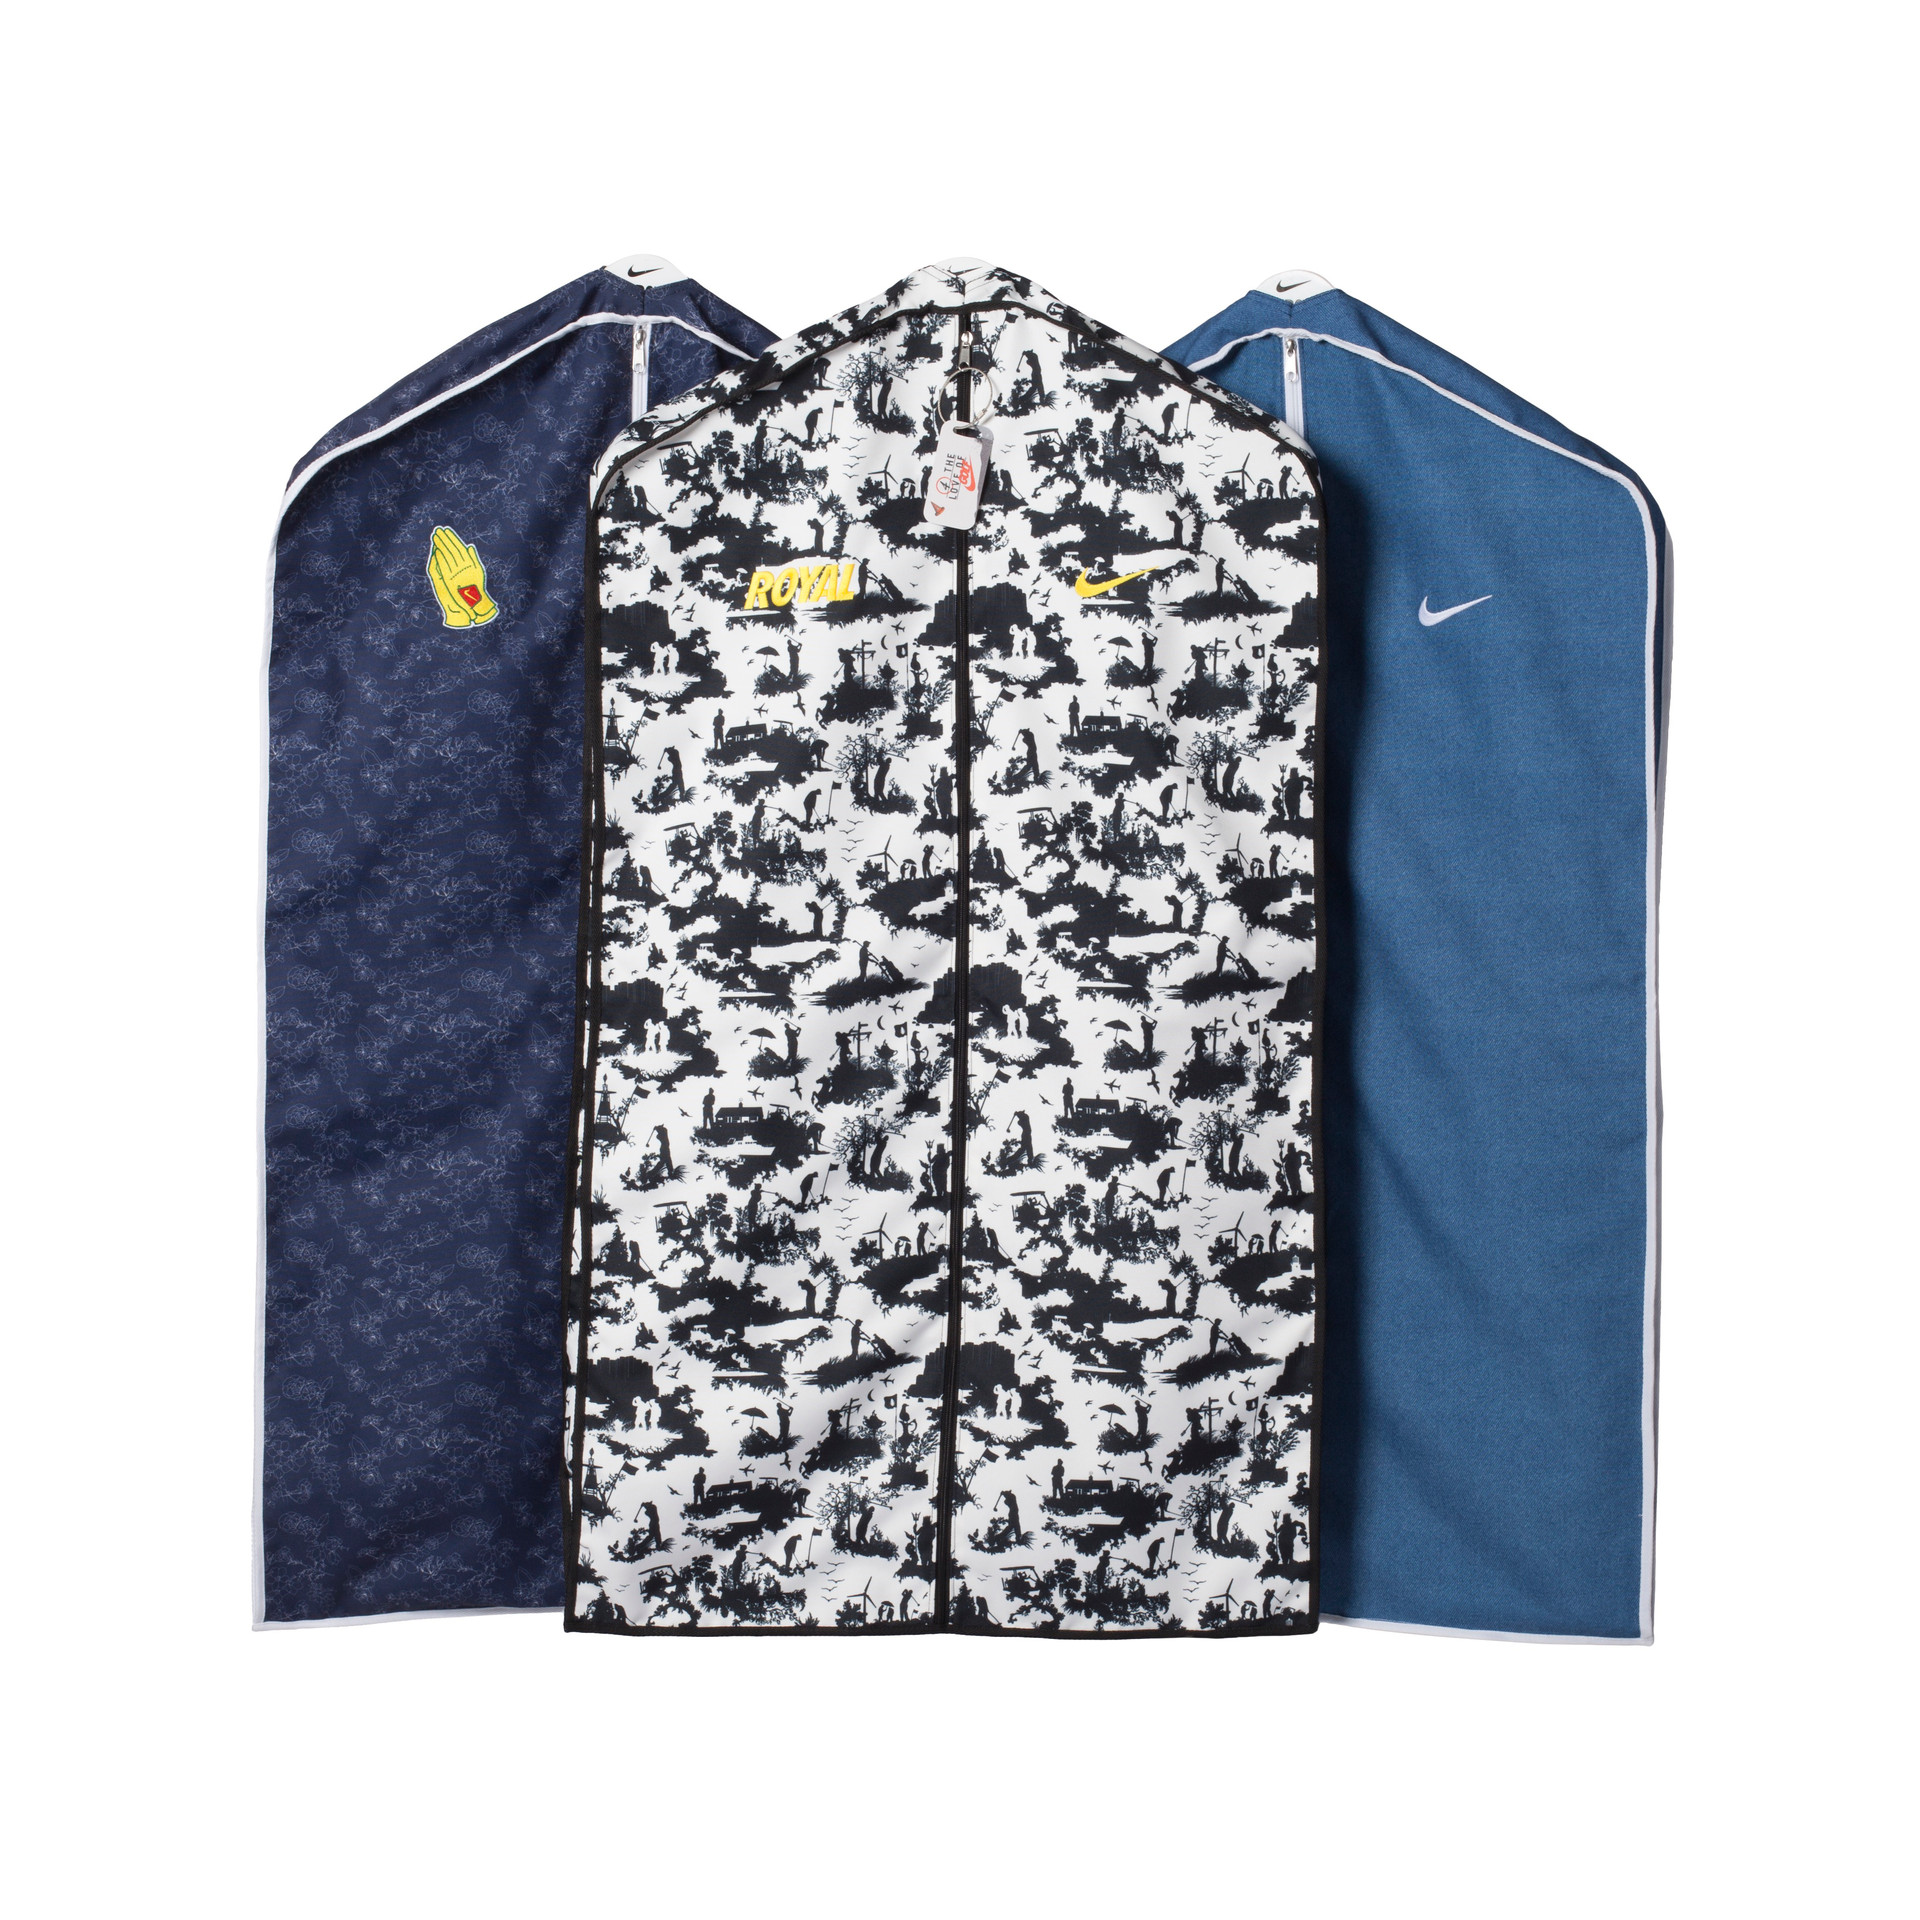 Nike Golf 2019 Majors Garment Bags